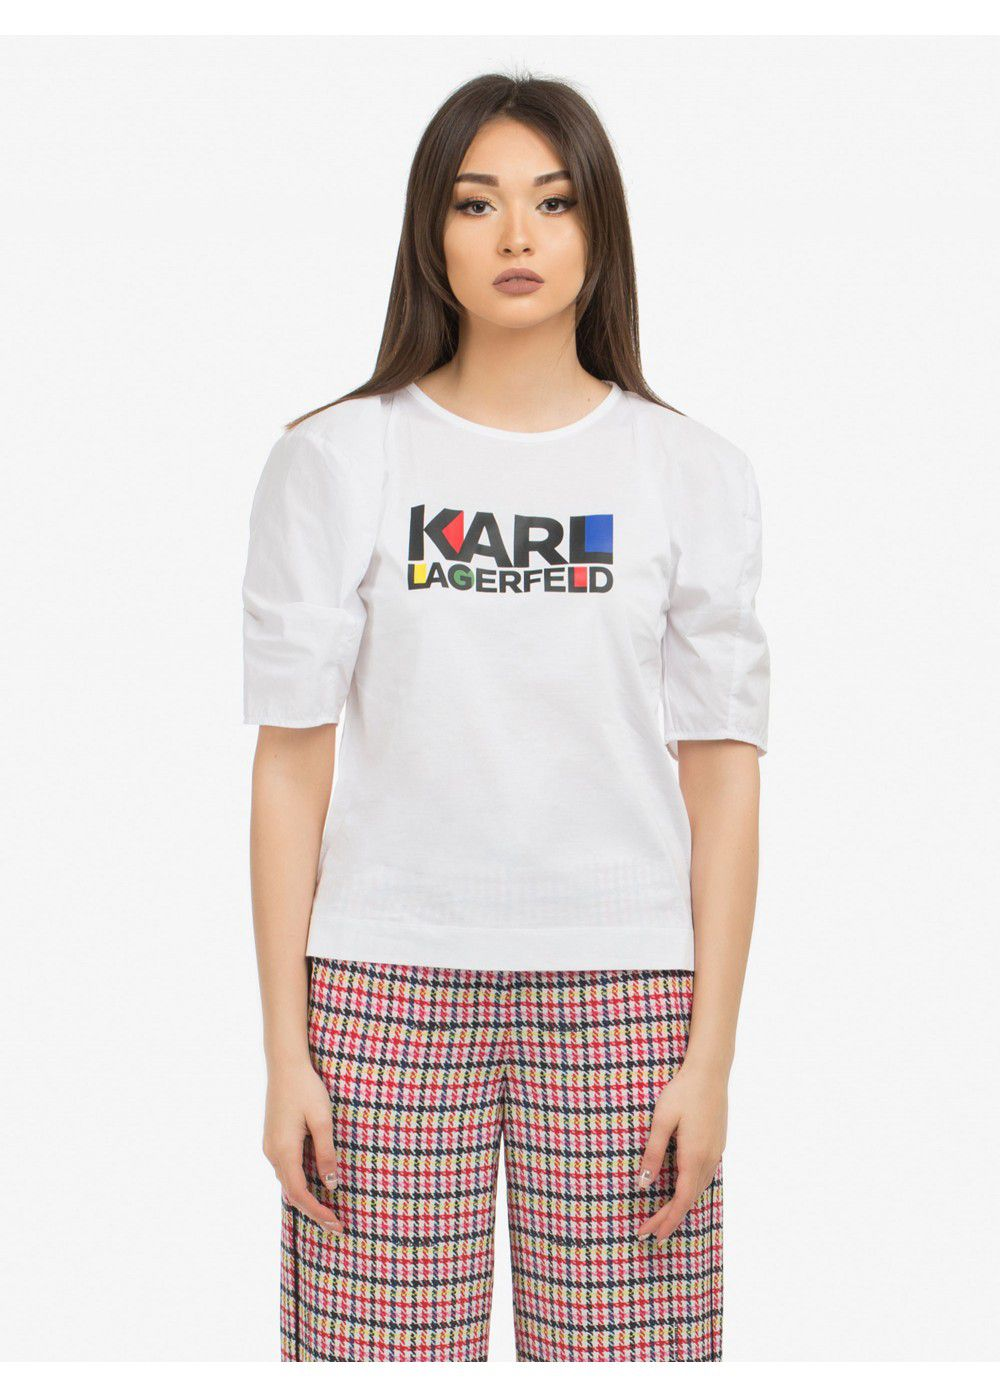 Karl Lagerfeld Puff-Sleeve Bauhaus Top-White